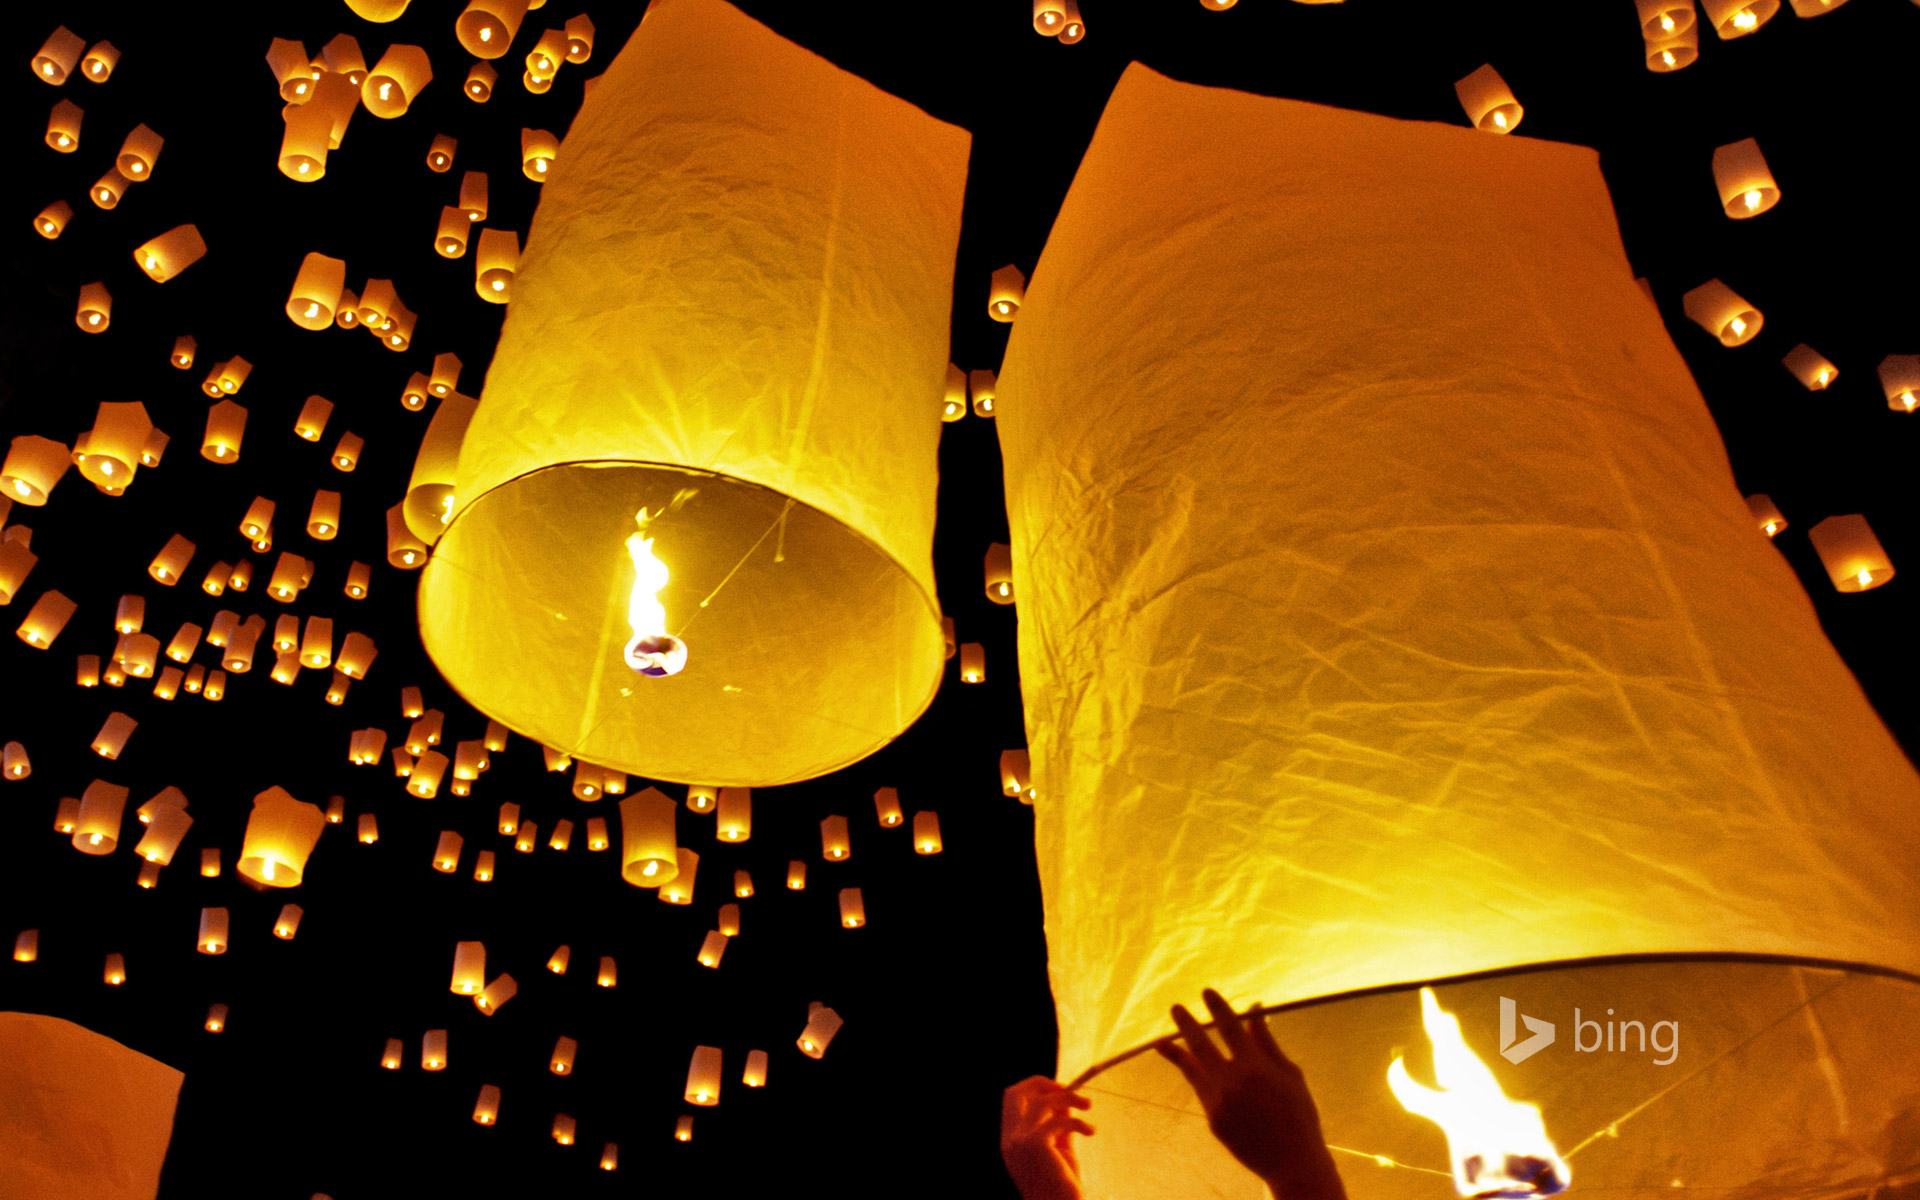 Fire lanterns released during Loi Krathong in Chiang Mai, Thailand